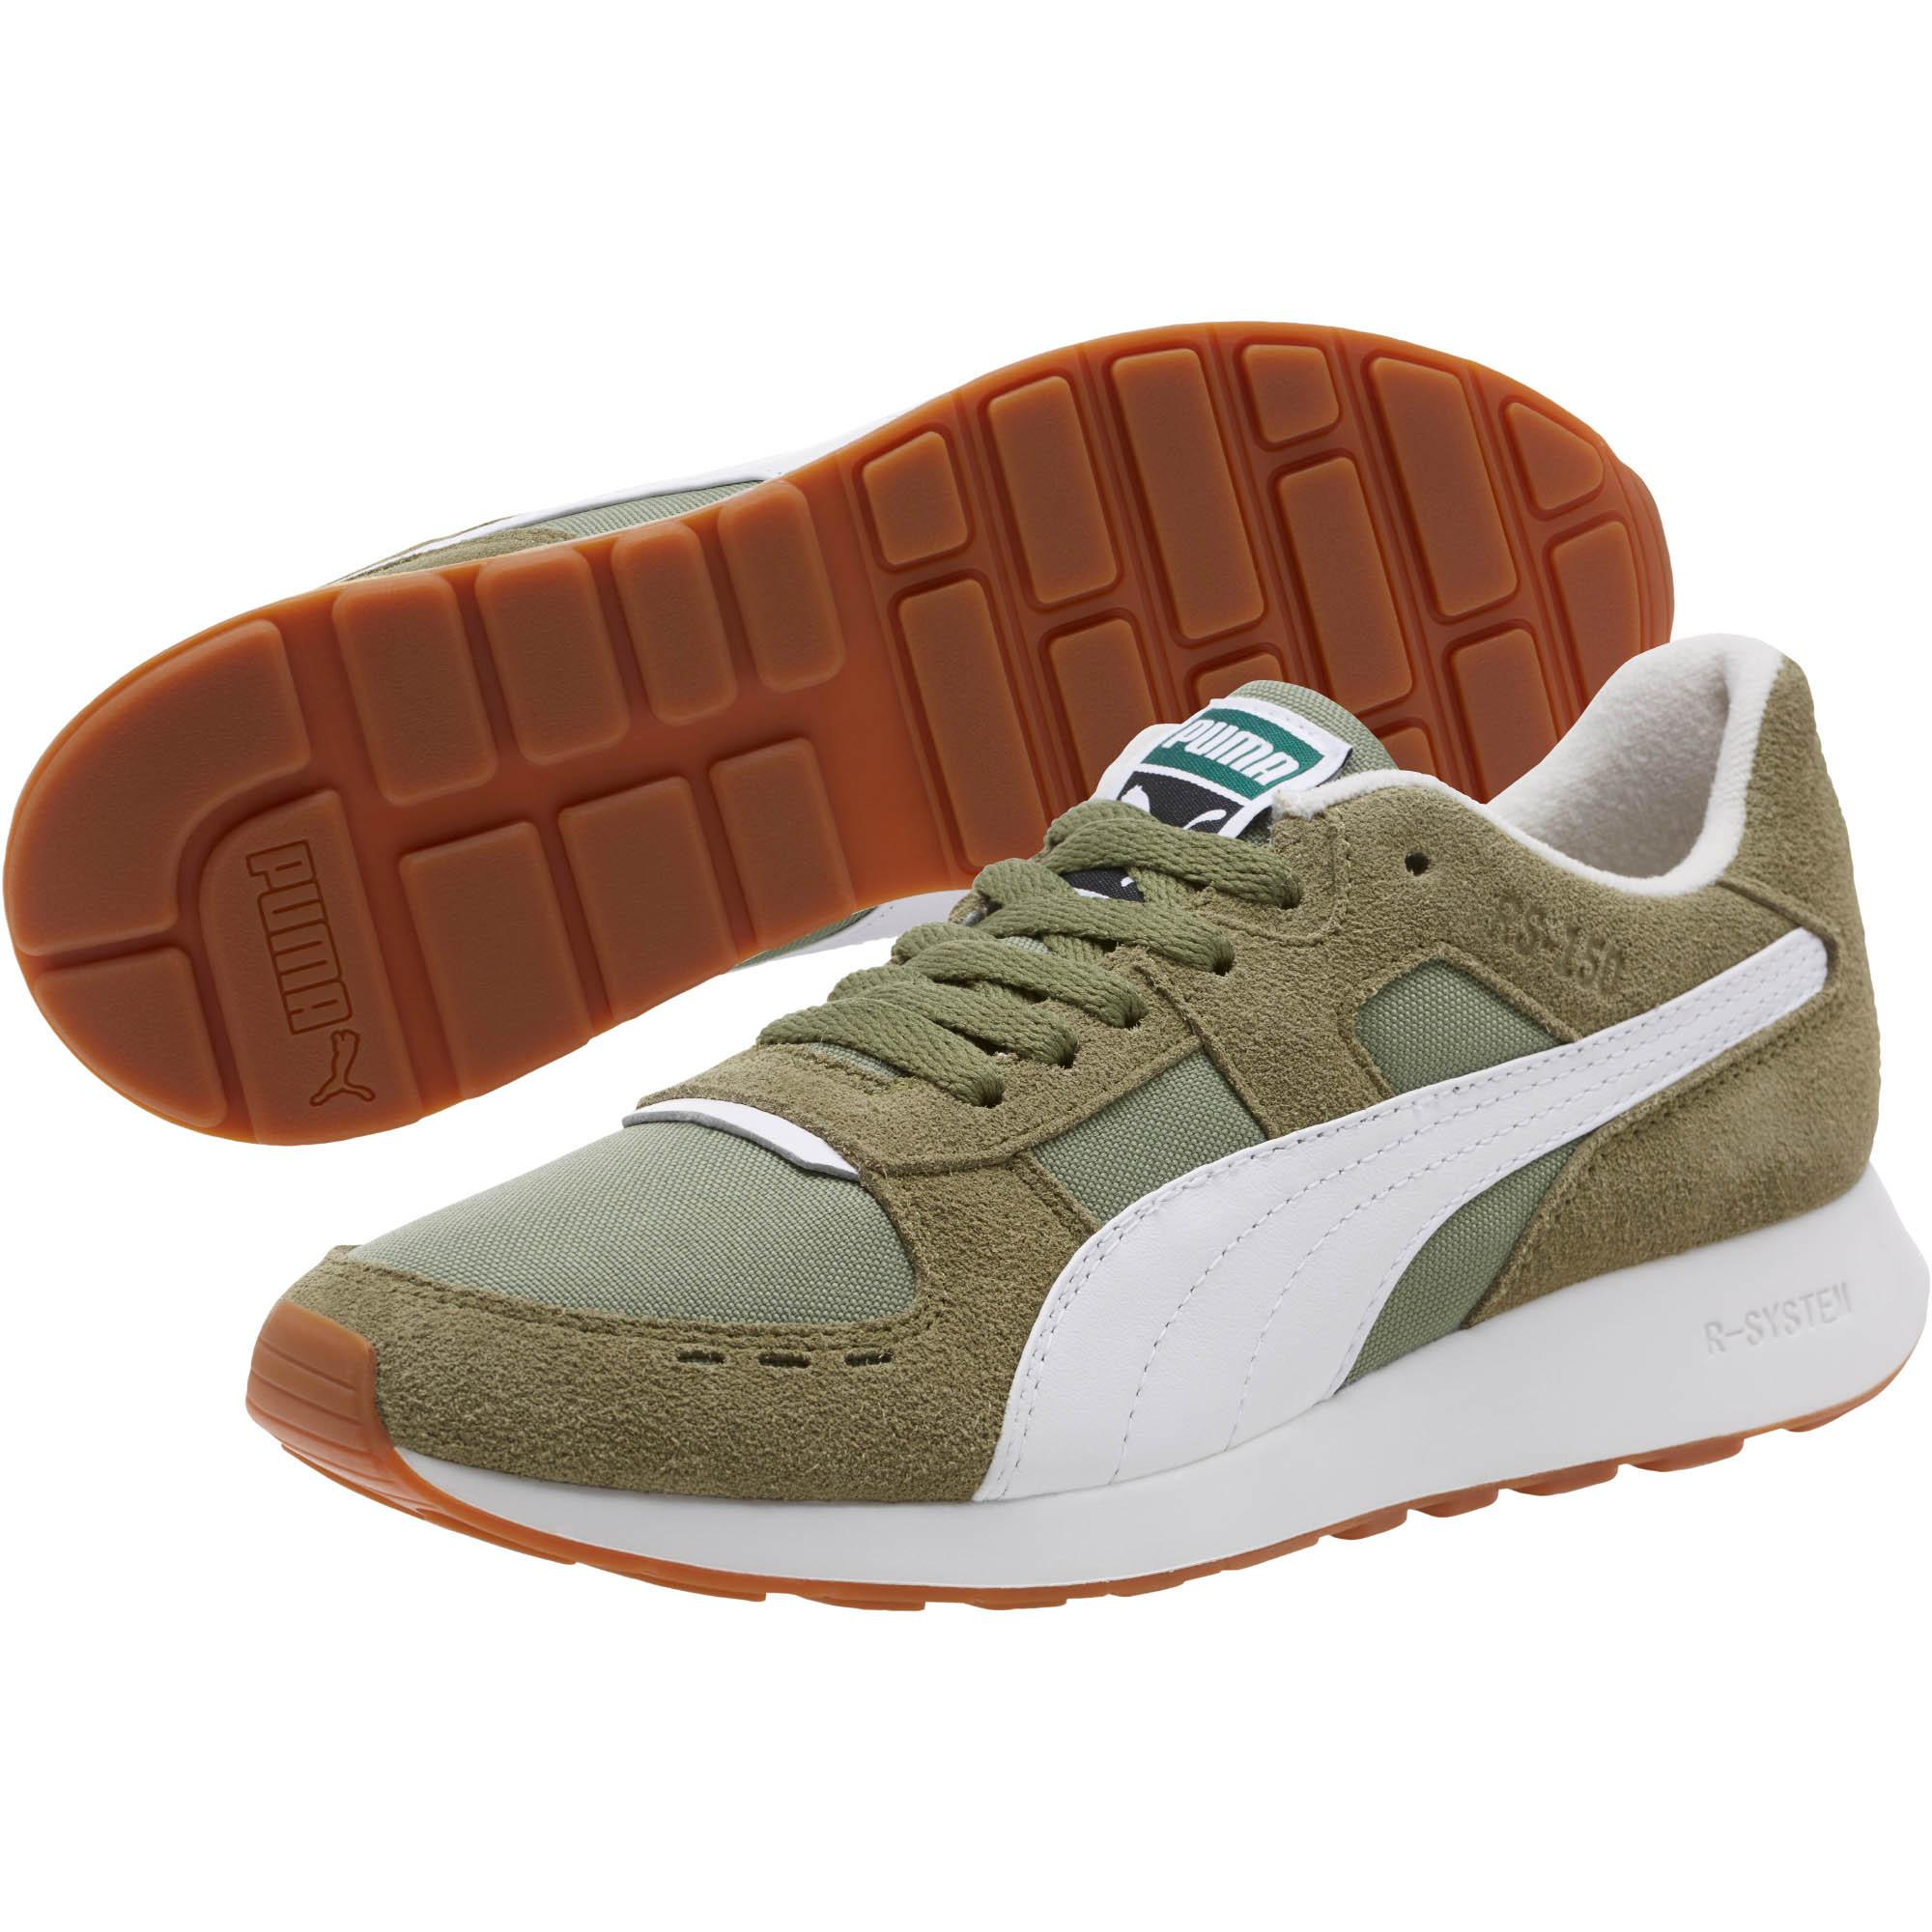 Puma Women's Green Lyst In Sneakers 150 Nylon Rs dw0qIC0